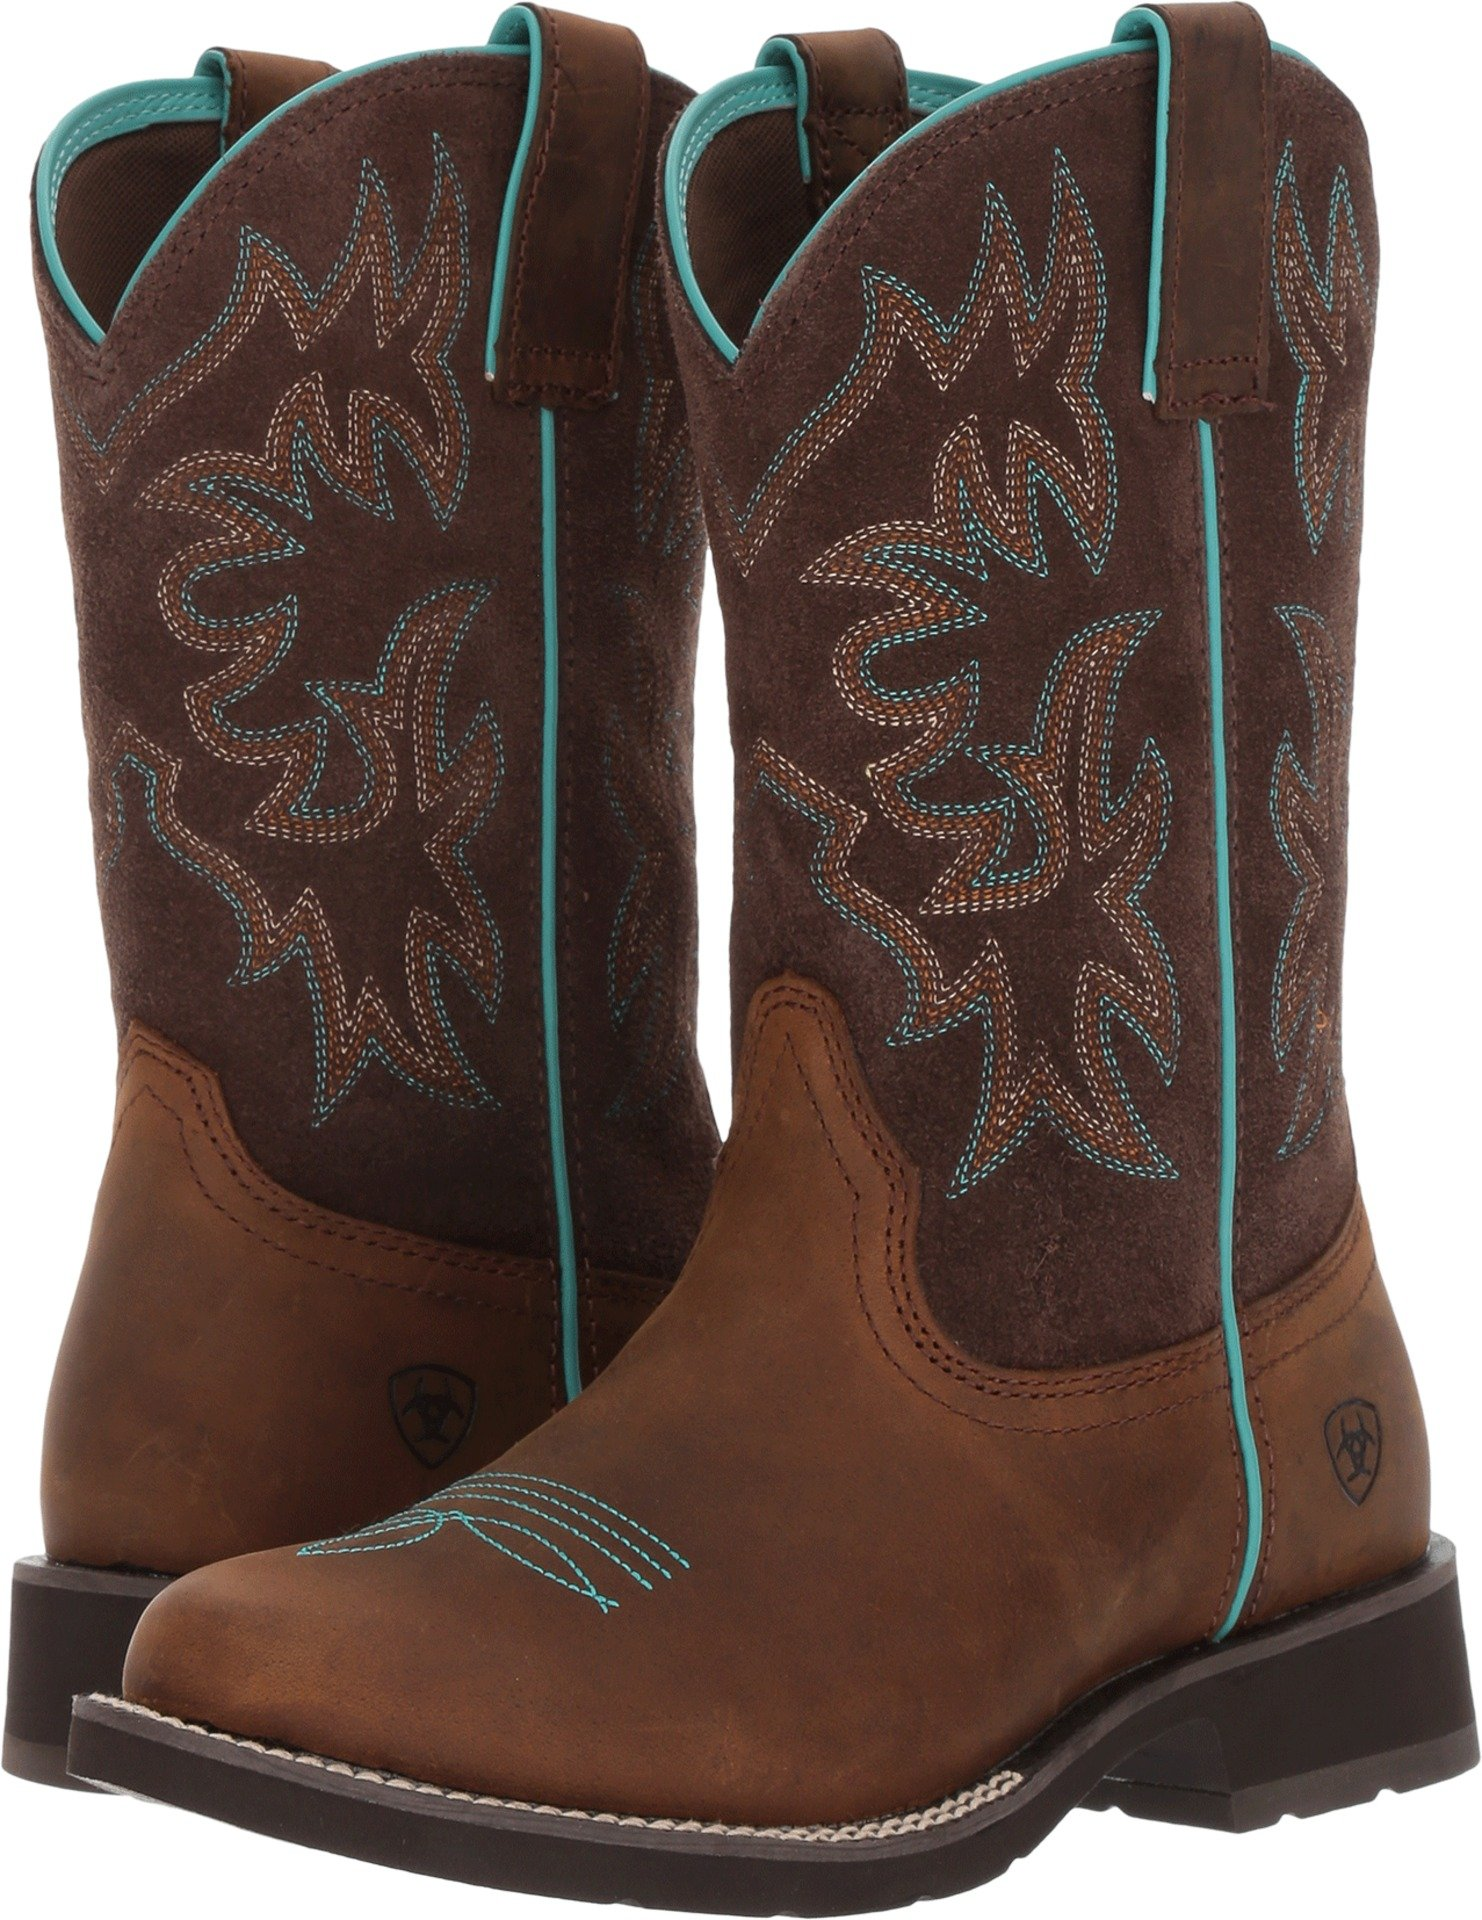 Ariat Women's Delilah Round Toe Work Boot, Distressed Brown, 6 B US